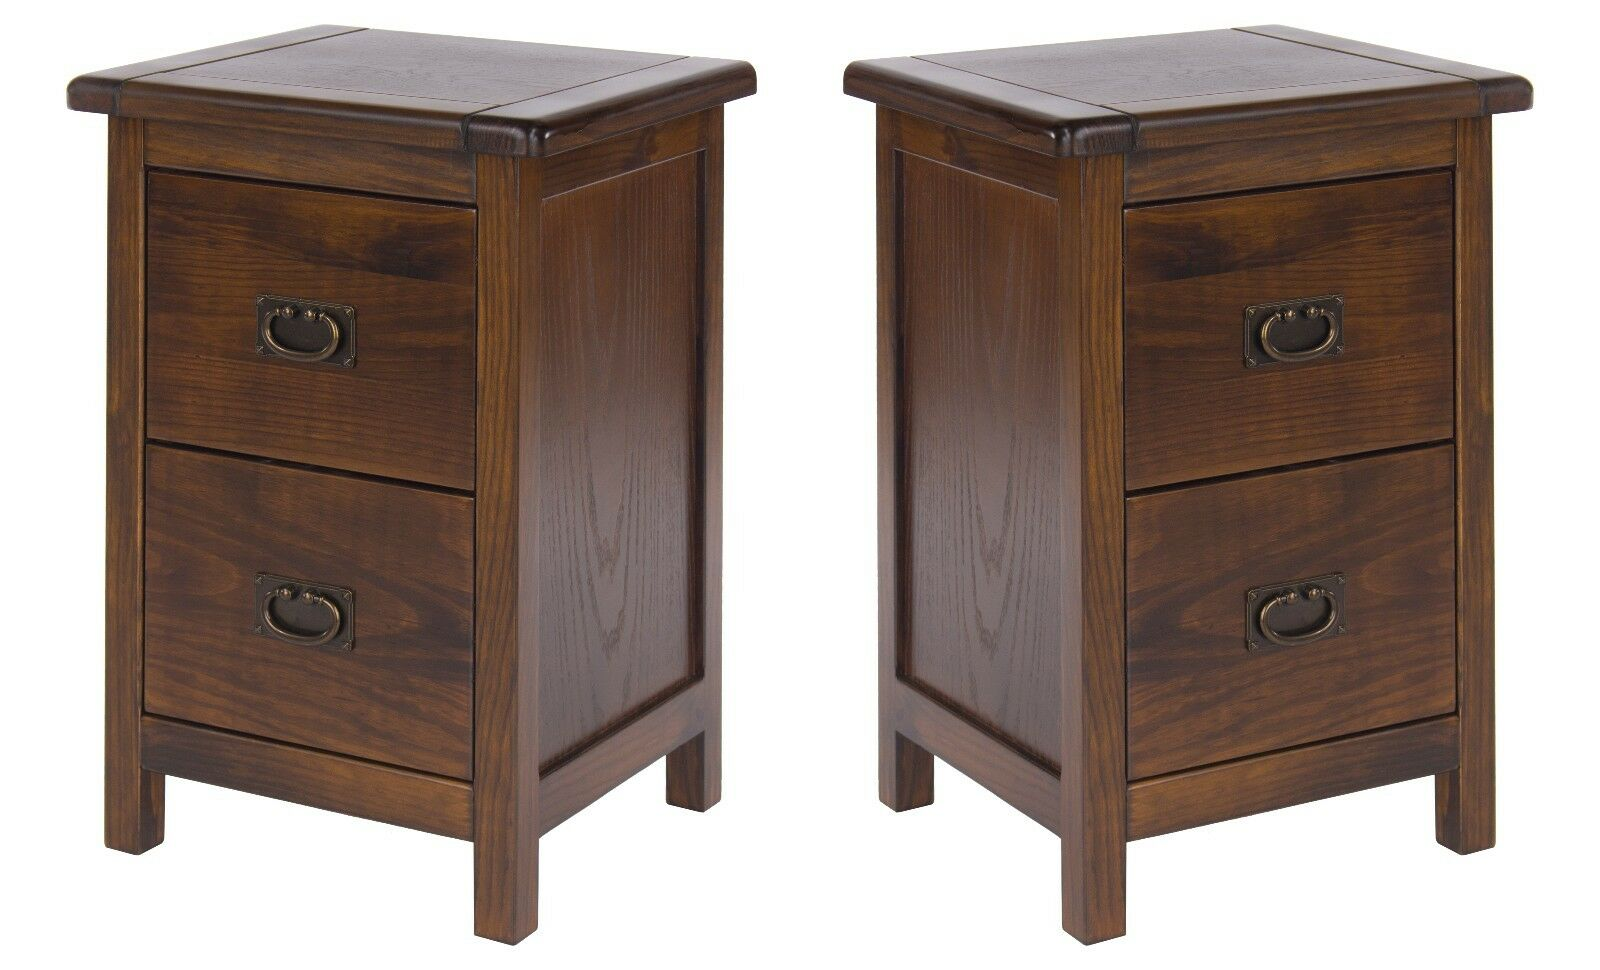 Dark Wooden Table ~ Pair of bedside cabinets tables dark wood baltia solid